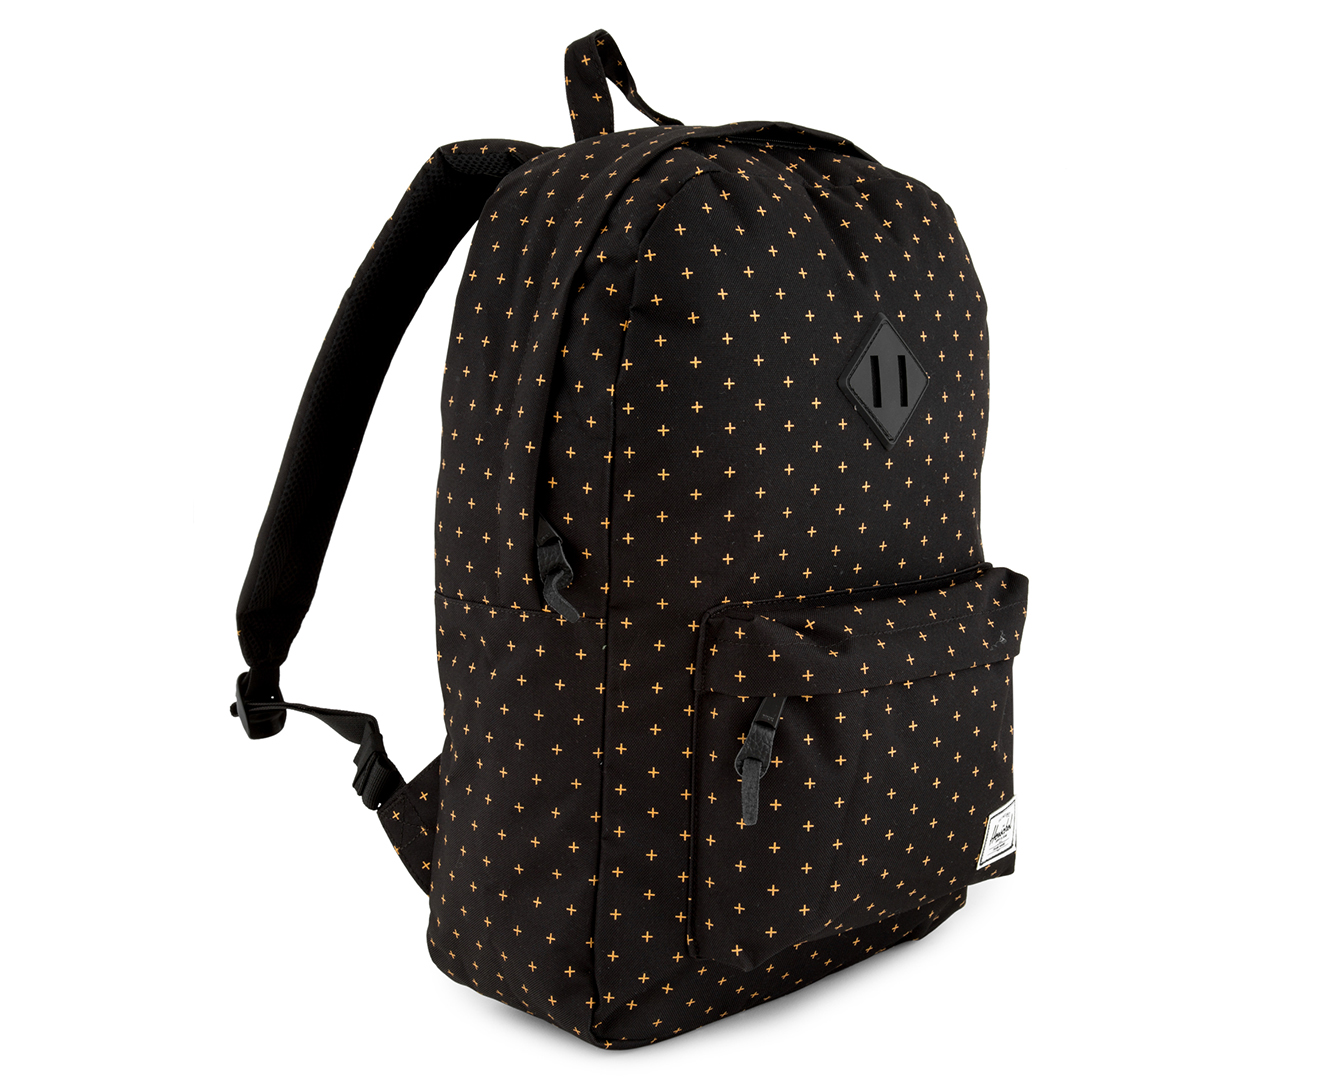 d17ecd0b1f Herschel Supply Co. 21.5L Heritage Backpack - Black Gridlock Gold ...